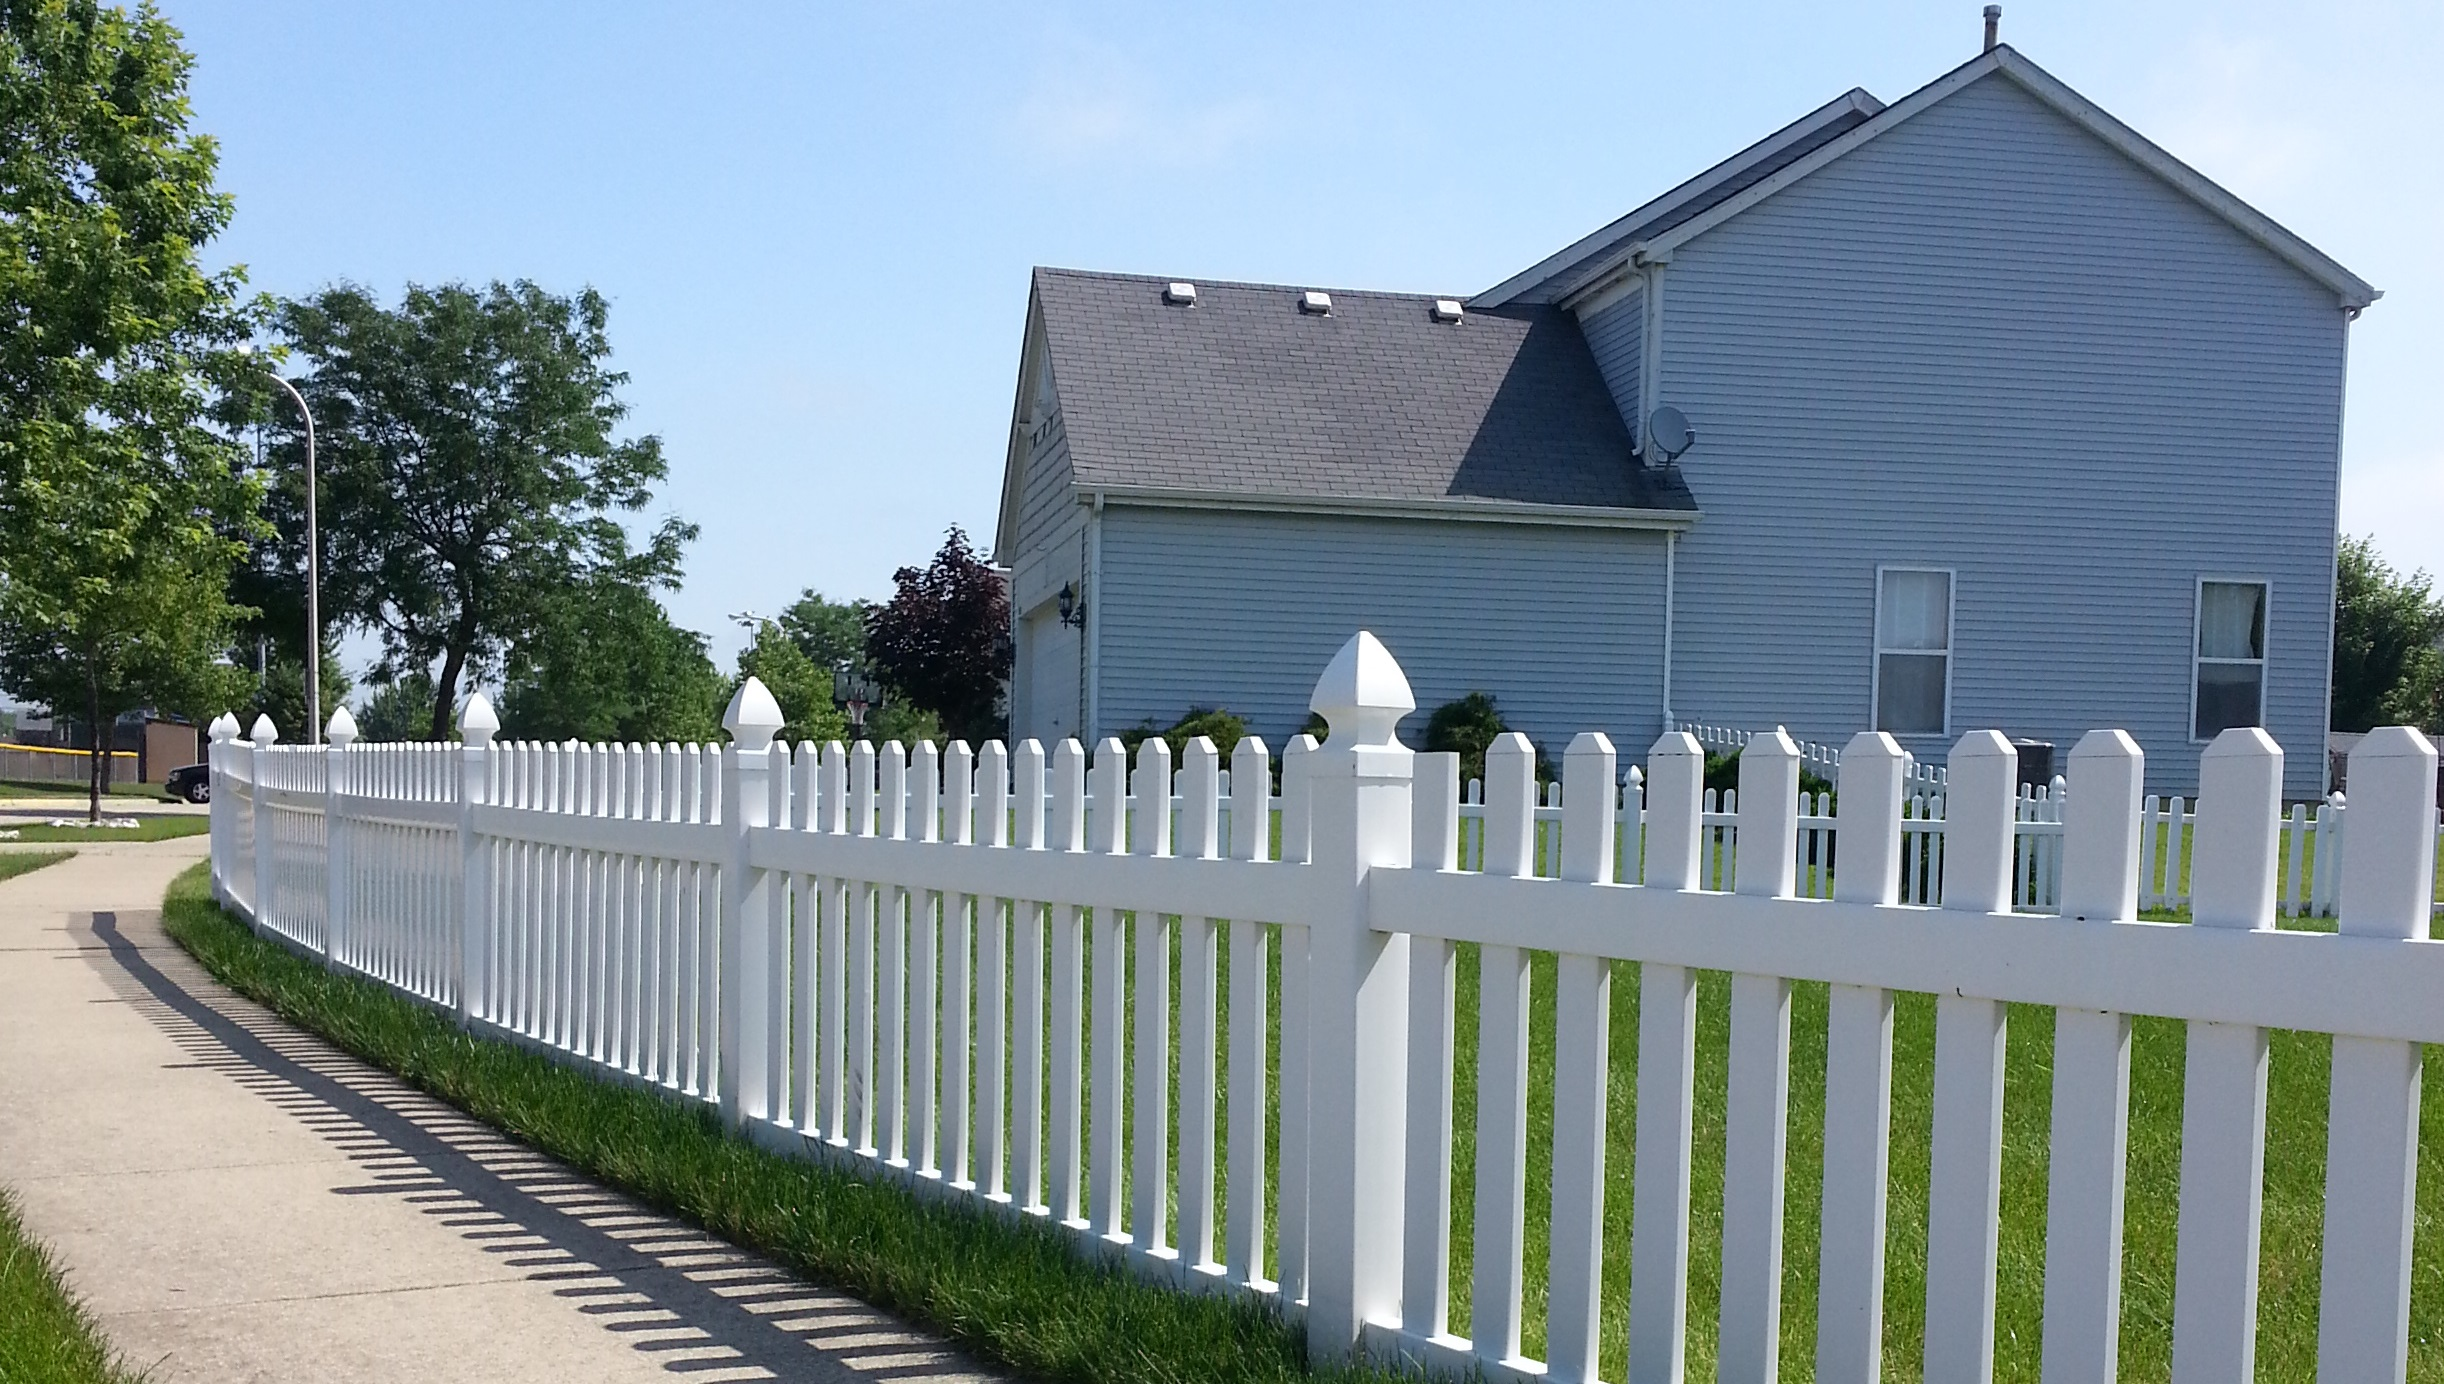 Vinyl fencing south elgin il royal fence but we also provide the most efficient and cost effective installation in the western chicagoland area we offer many different fencing styles to match baanklon Choice Image